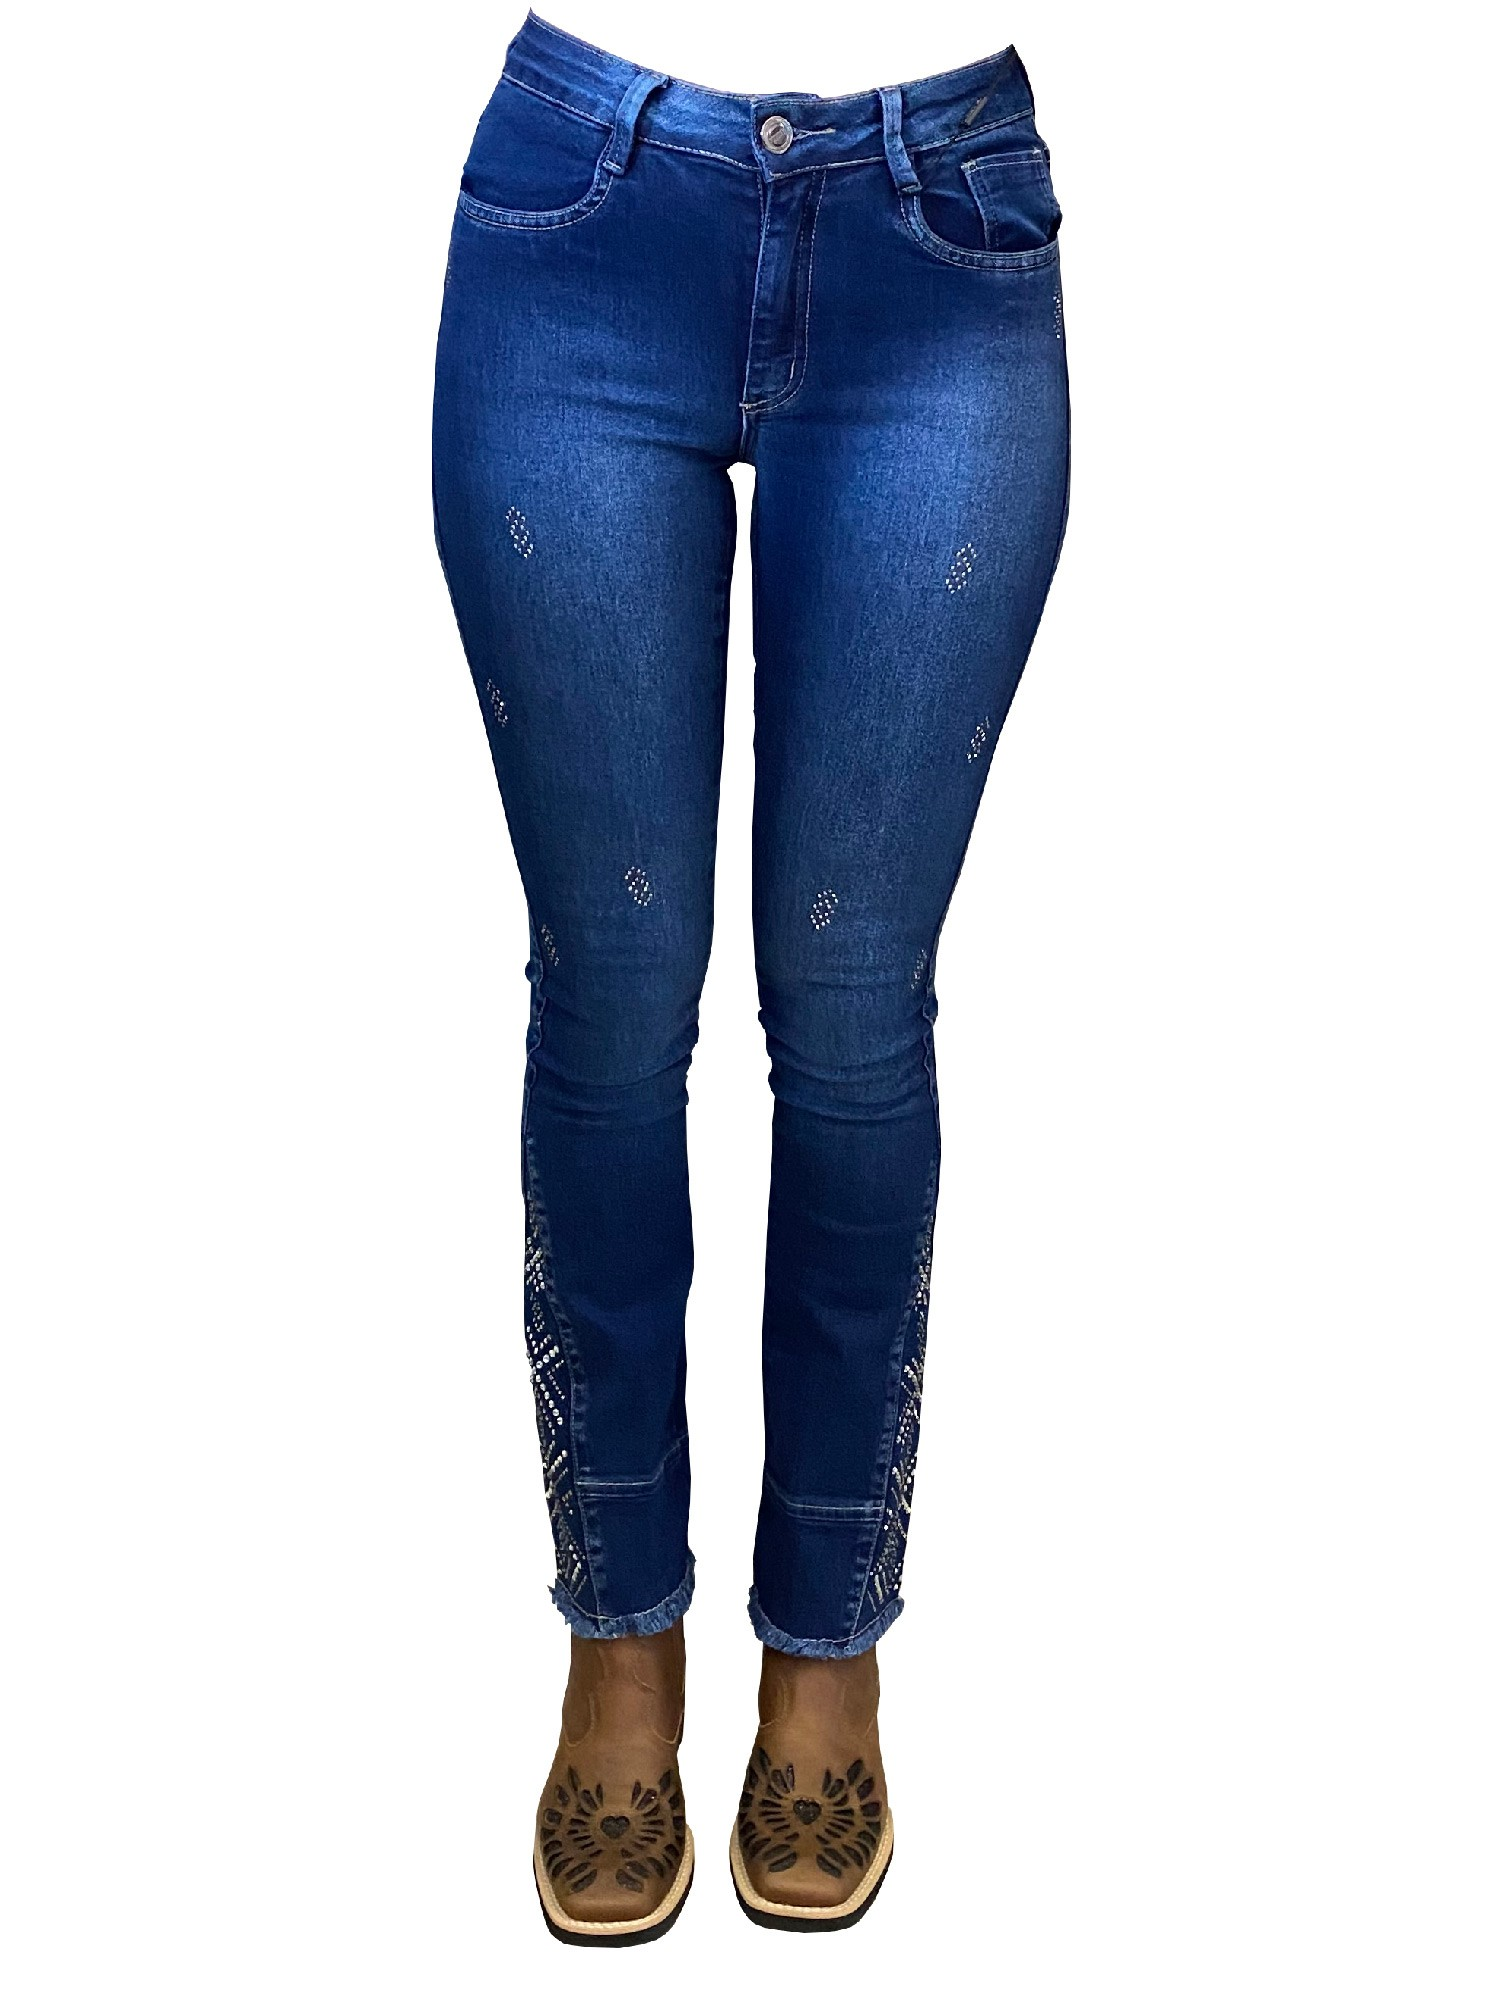 Calça Jeans Feminina Minuty Country Boot Cut Strass 19549